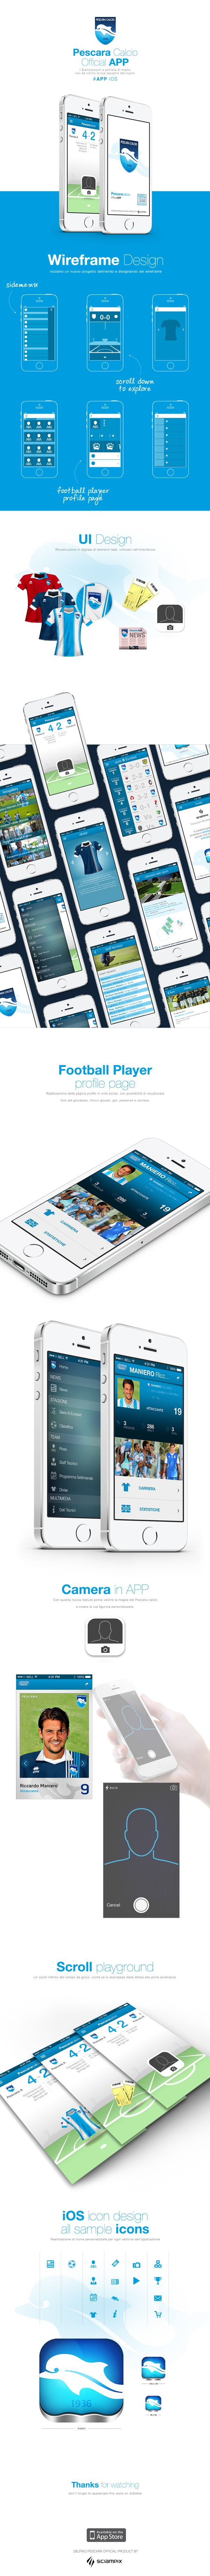 Official App Pescara Calcio by Fabio Murru, via Behance